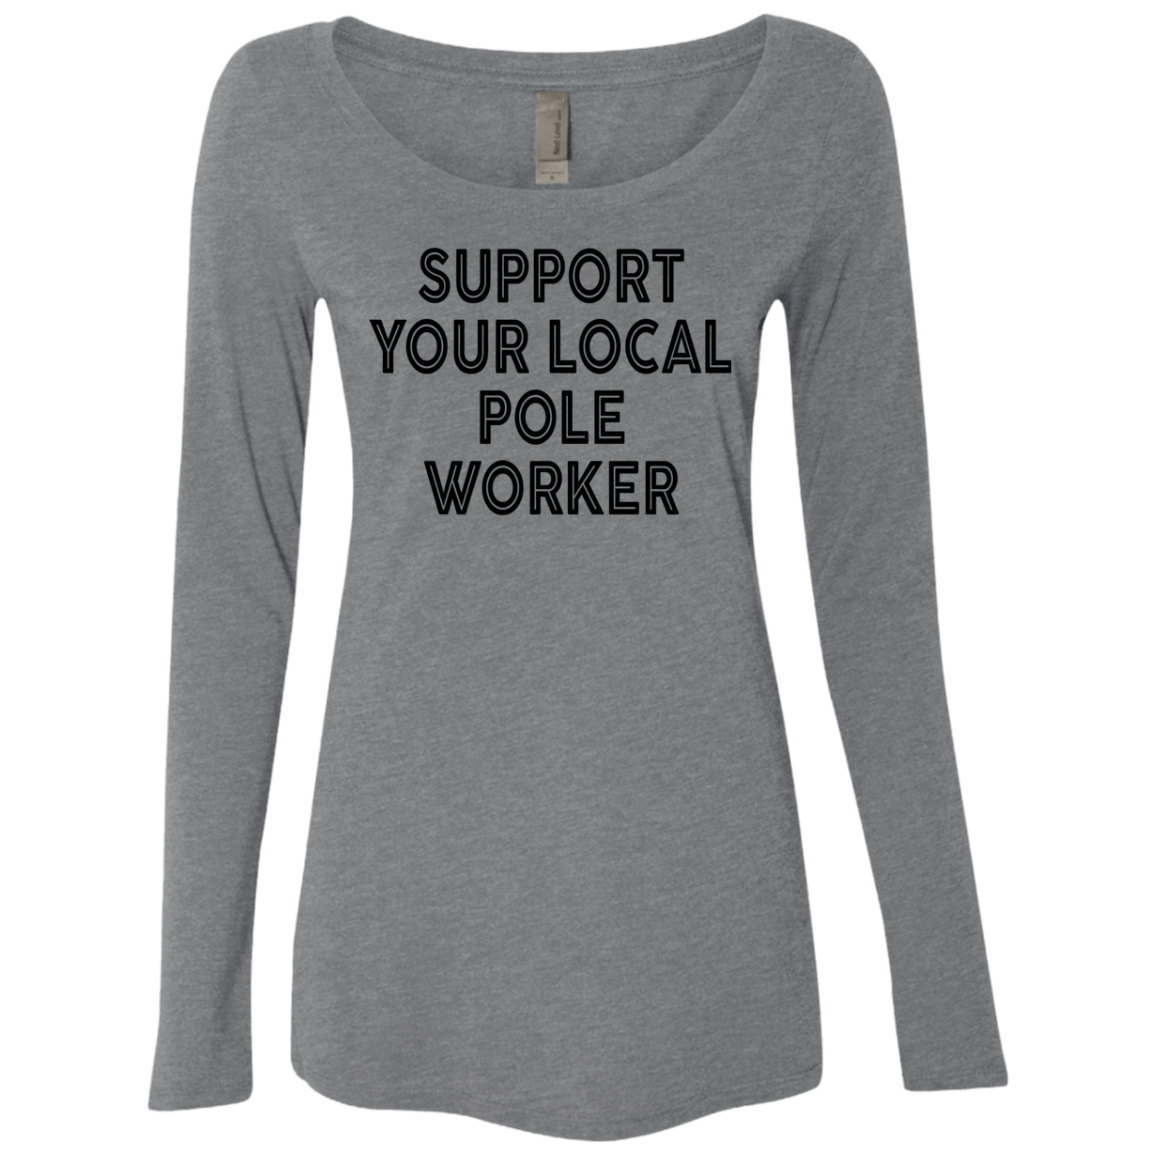 Support Your Local Pole Worker Women's Long Sleeve Tee